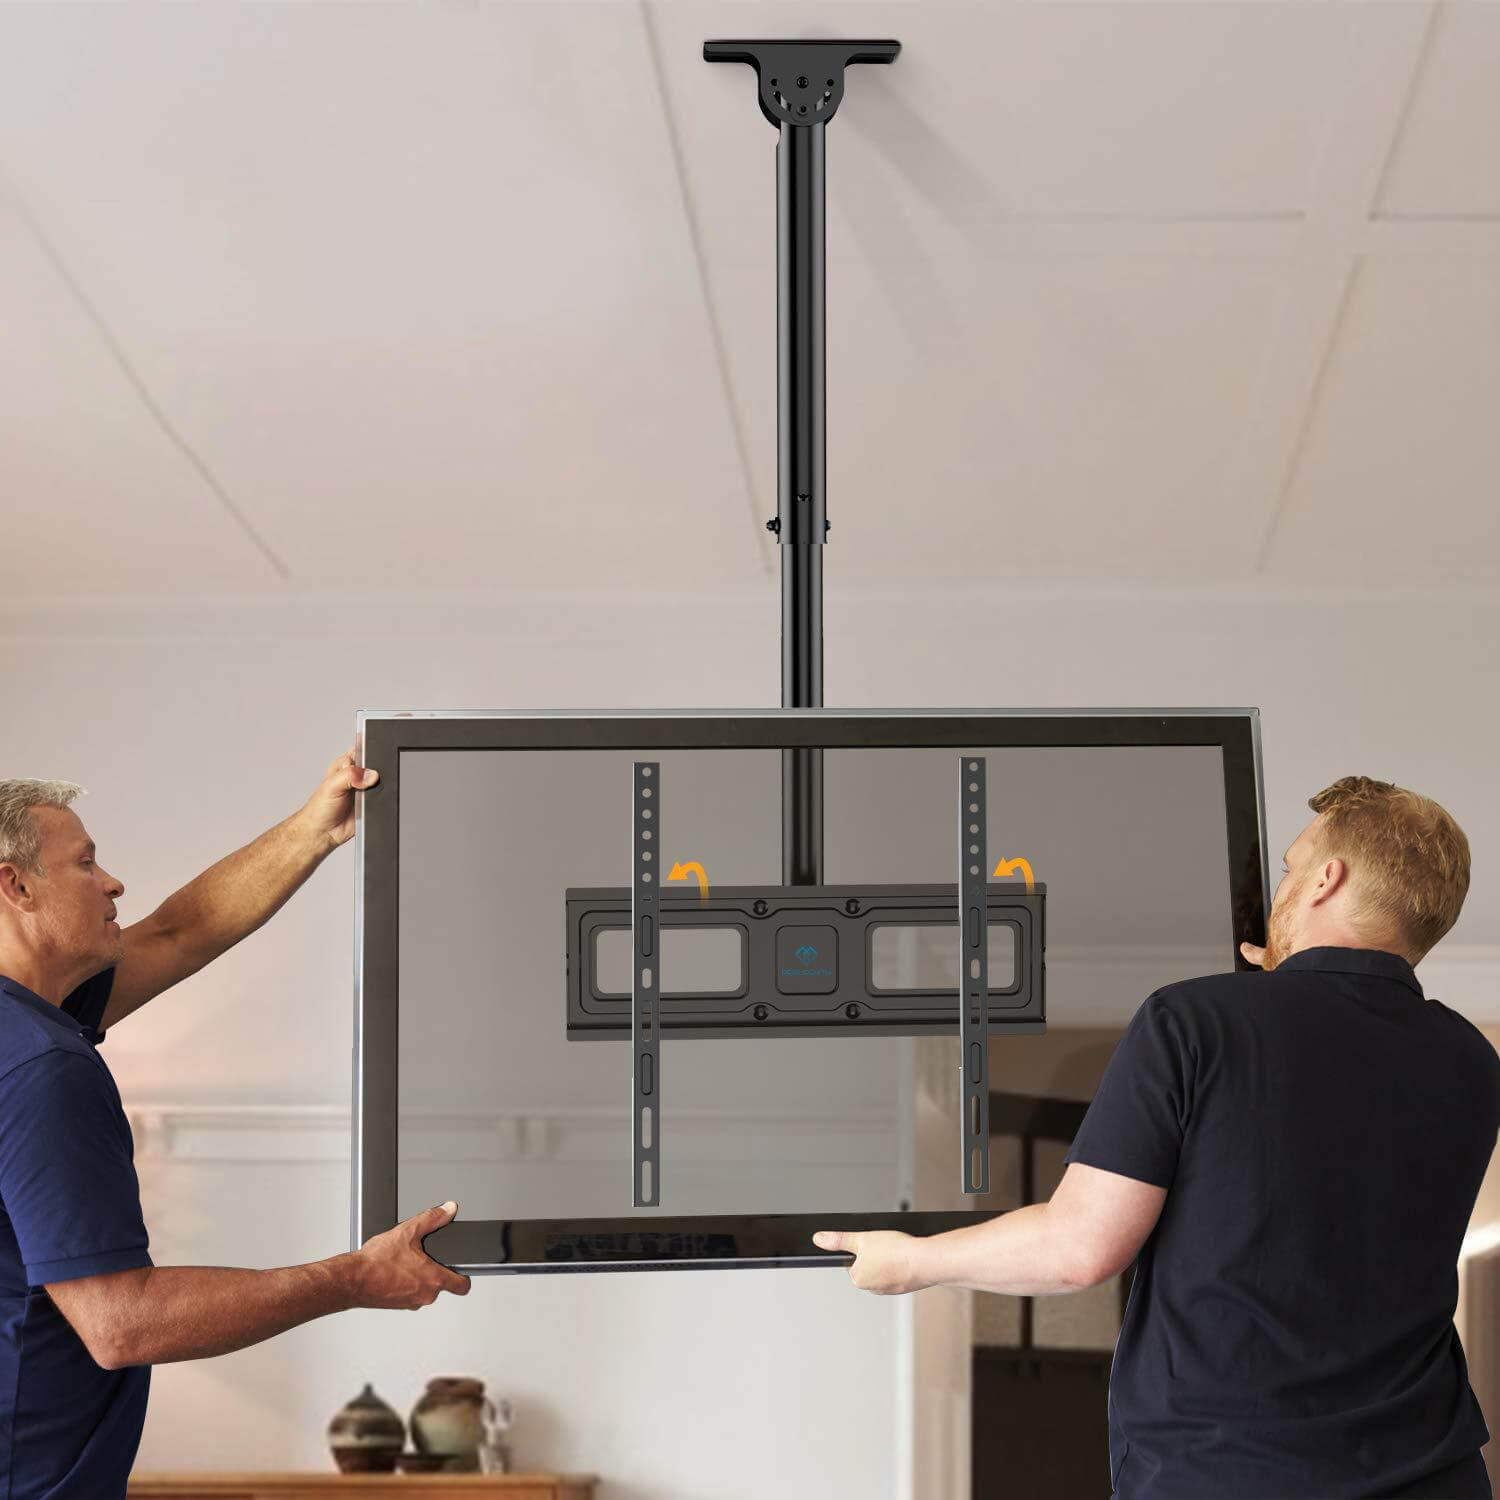 Installing a Ceiling TV Mount